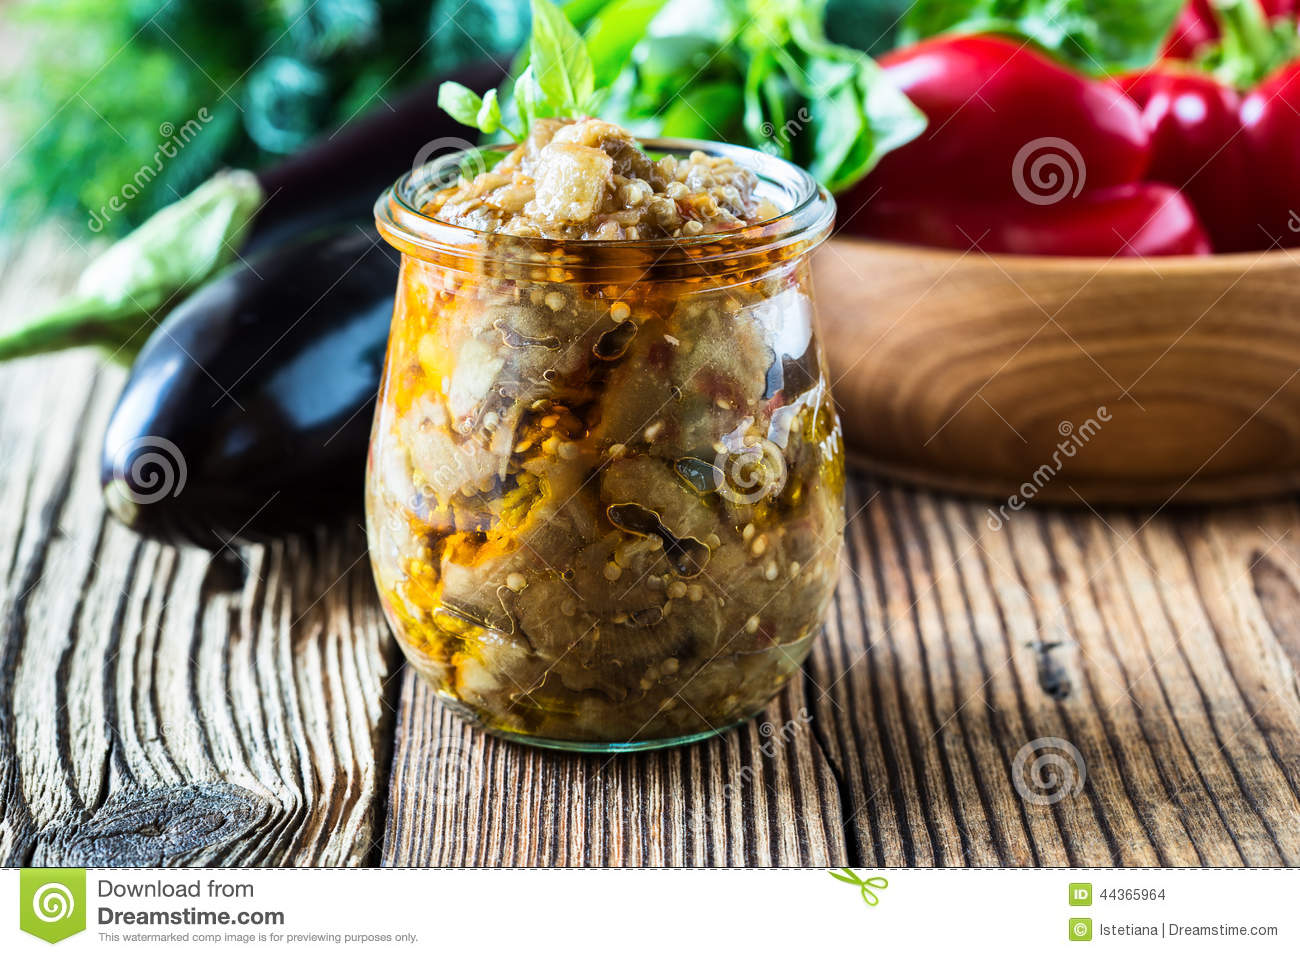 Conserve d 39 aubergine dans le pot en verre photo stock for Pot de conserve en verre